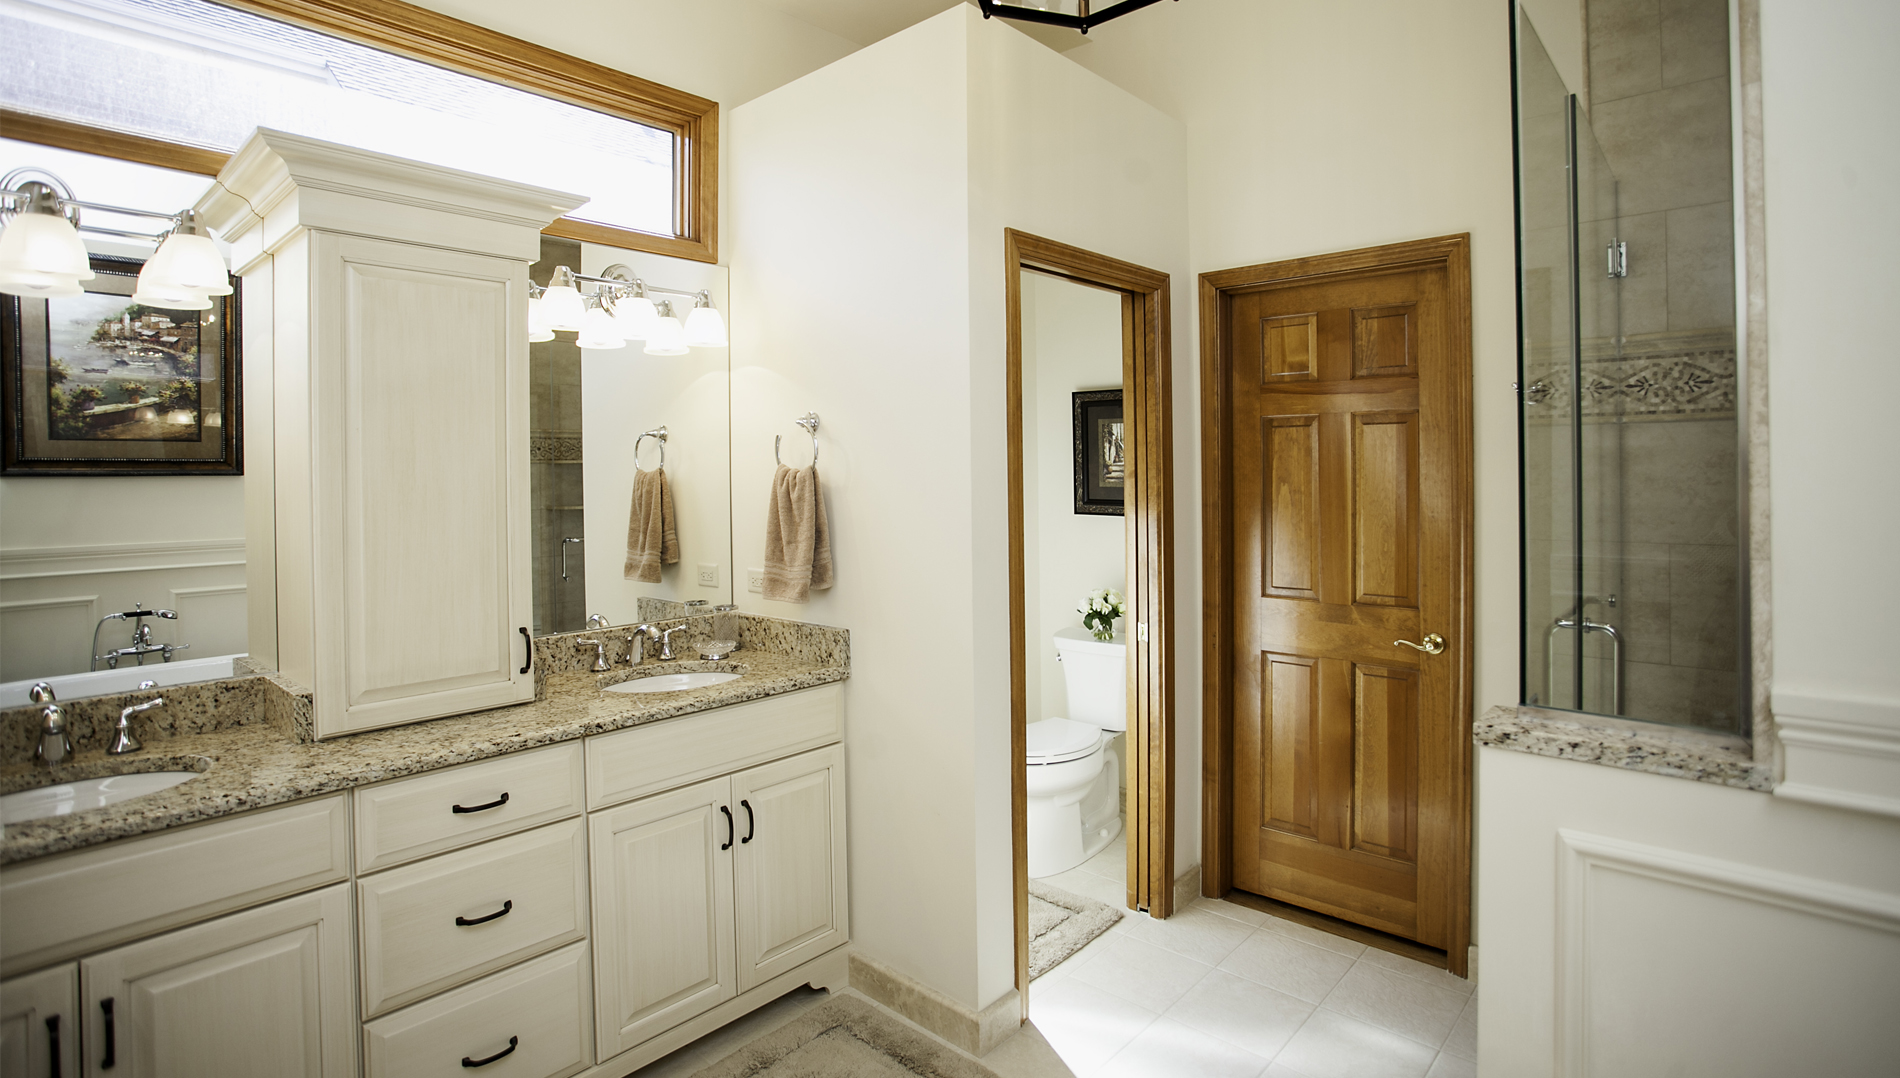 Custom Bathroom Vanities With Towers rest & relaxation at white eagle